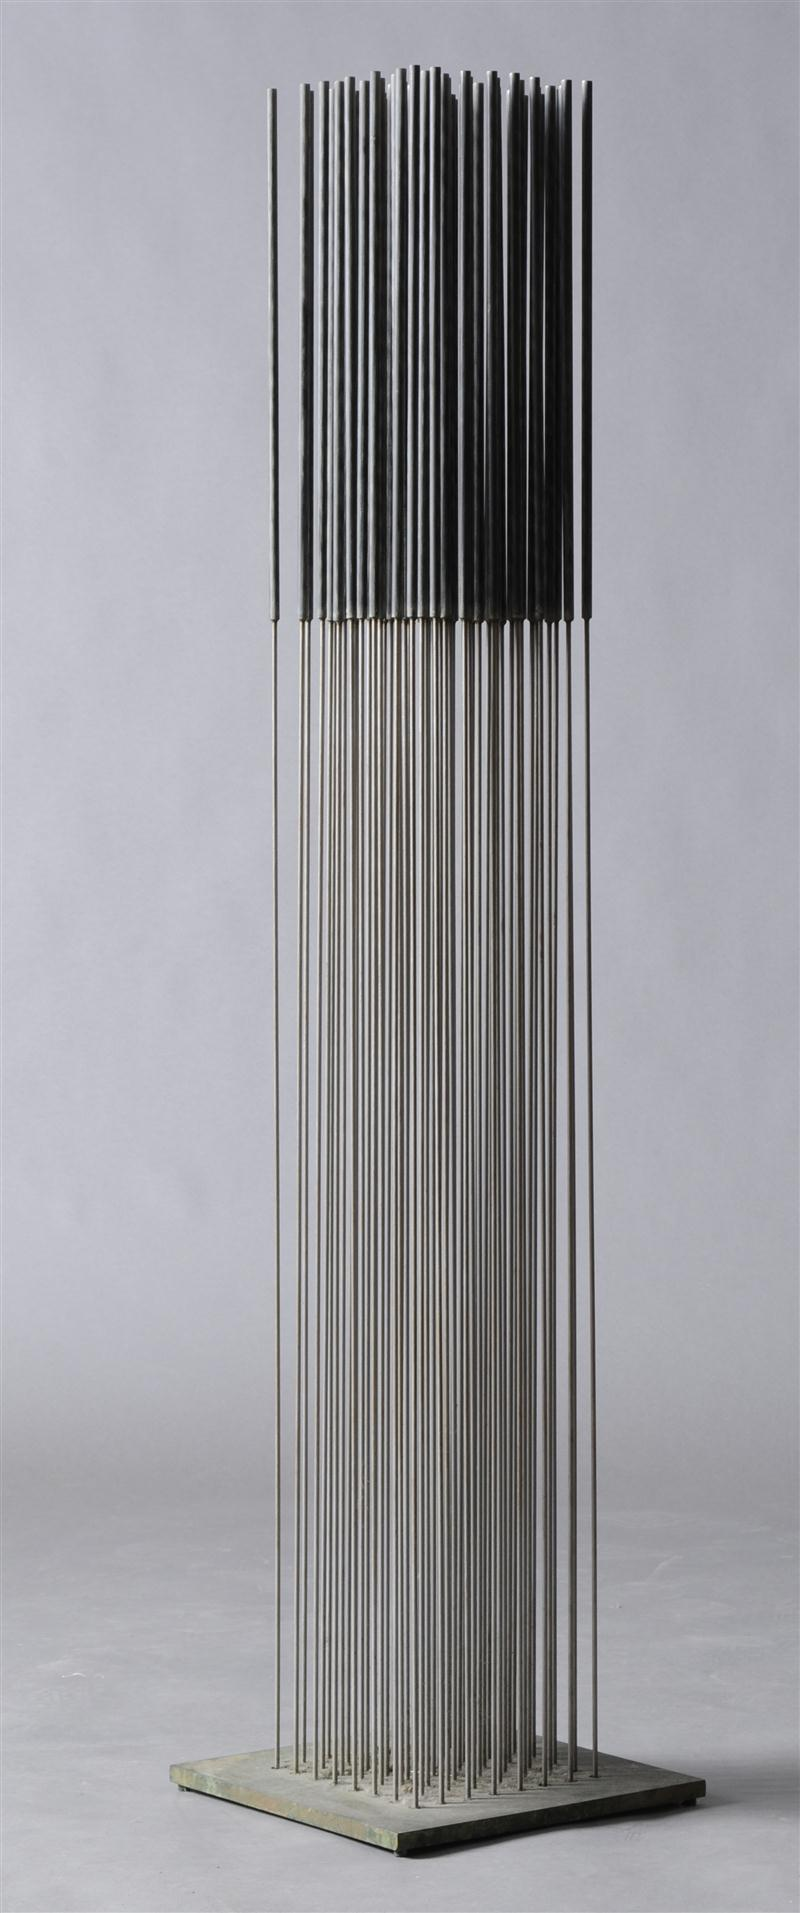 Sonambient , 1978/79  steel with bronze base  52 x 11 3/4 x 11 3/4; 132 x 30 x 30 centimeters